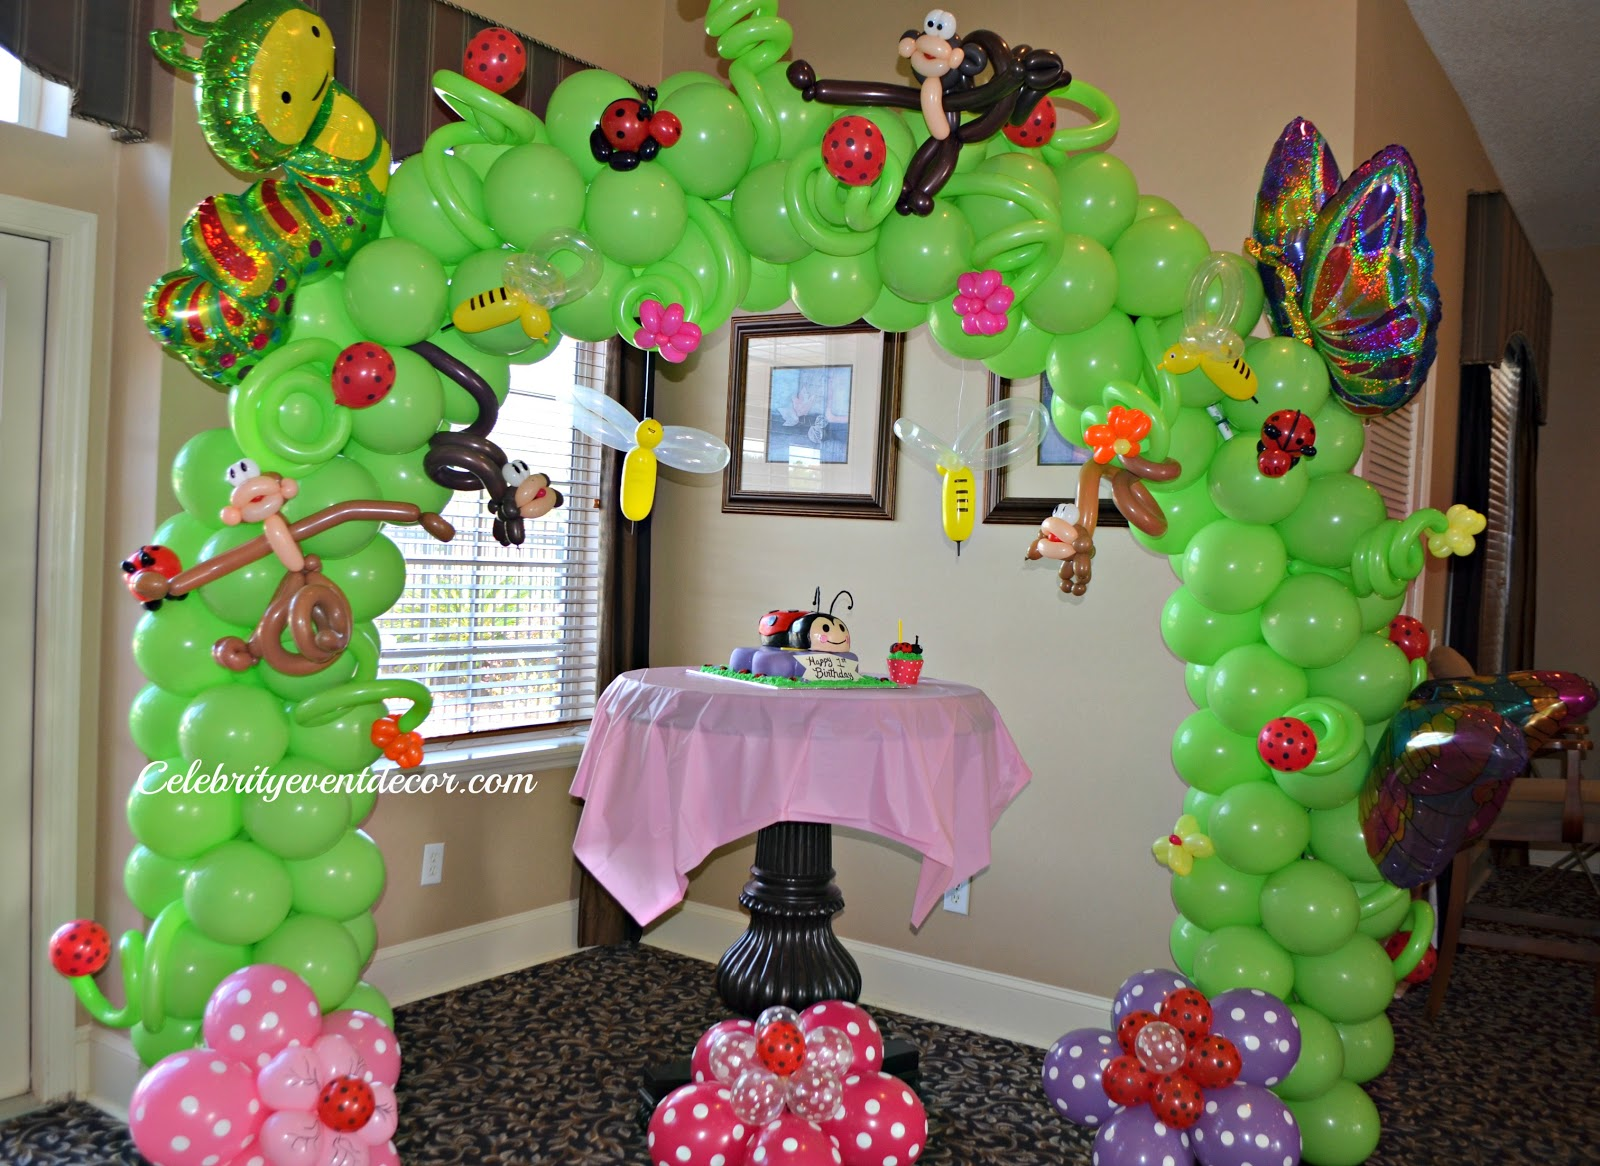 Celebrity event decor banquet hall llc october 2012 for Balloon decoration in chennai